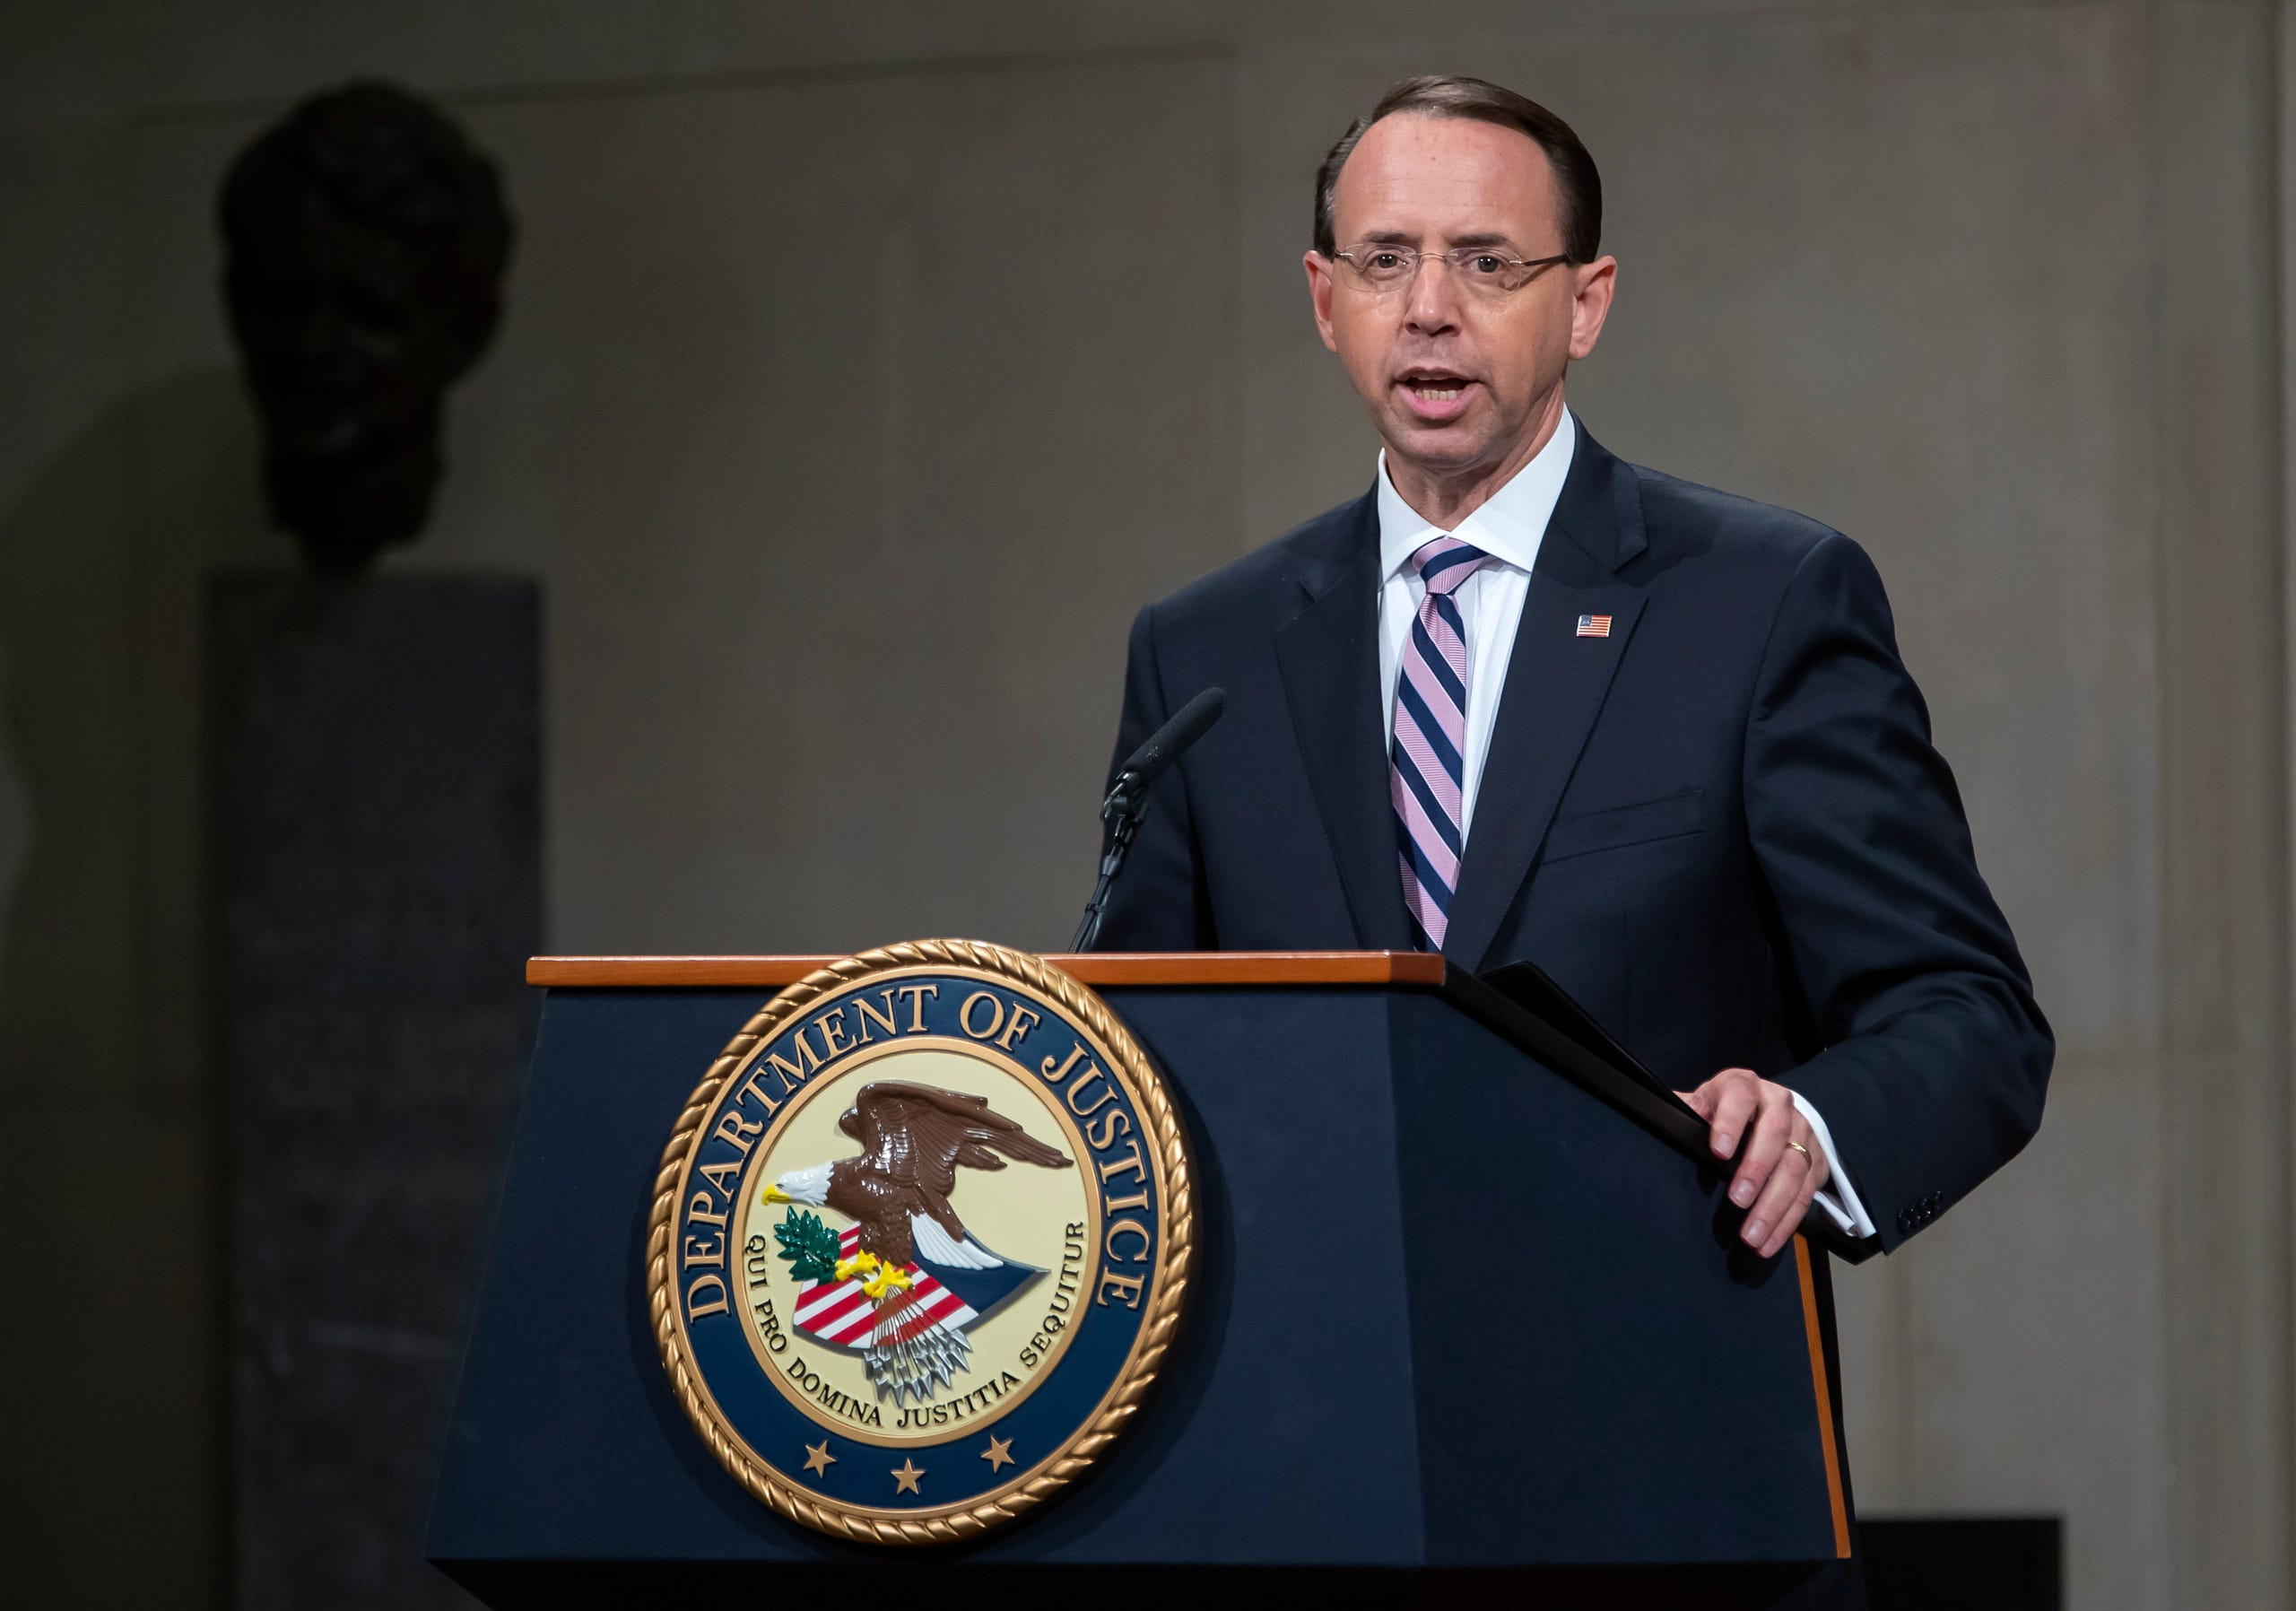 Deputy Attorney General Rod Rosenstein speaks during his 'Farewell Ceremony' at the Department Justice in Washington, DC, May 9. 2019. The Deputy Attorney Generalsubmitted his letter of resignation on April 29, effective May 11. He stepped down following the end of the Mueller investigation, during which he was often the target of President Donald Trump's criticism.